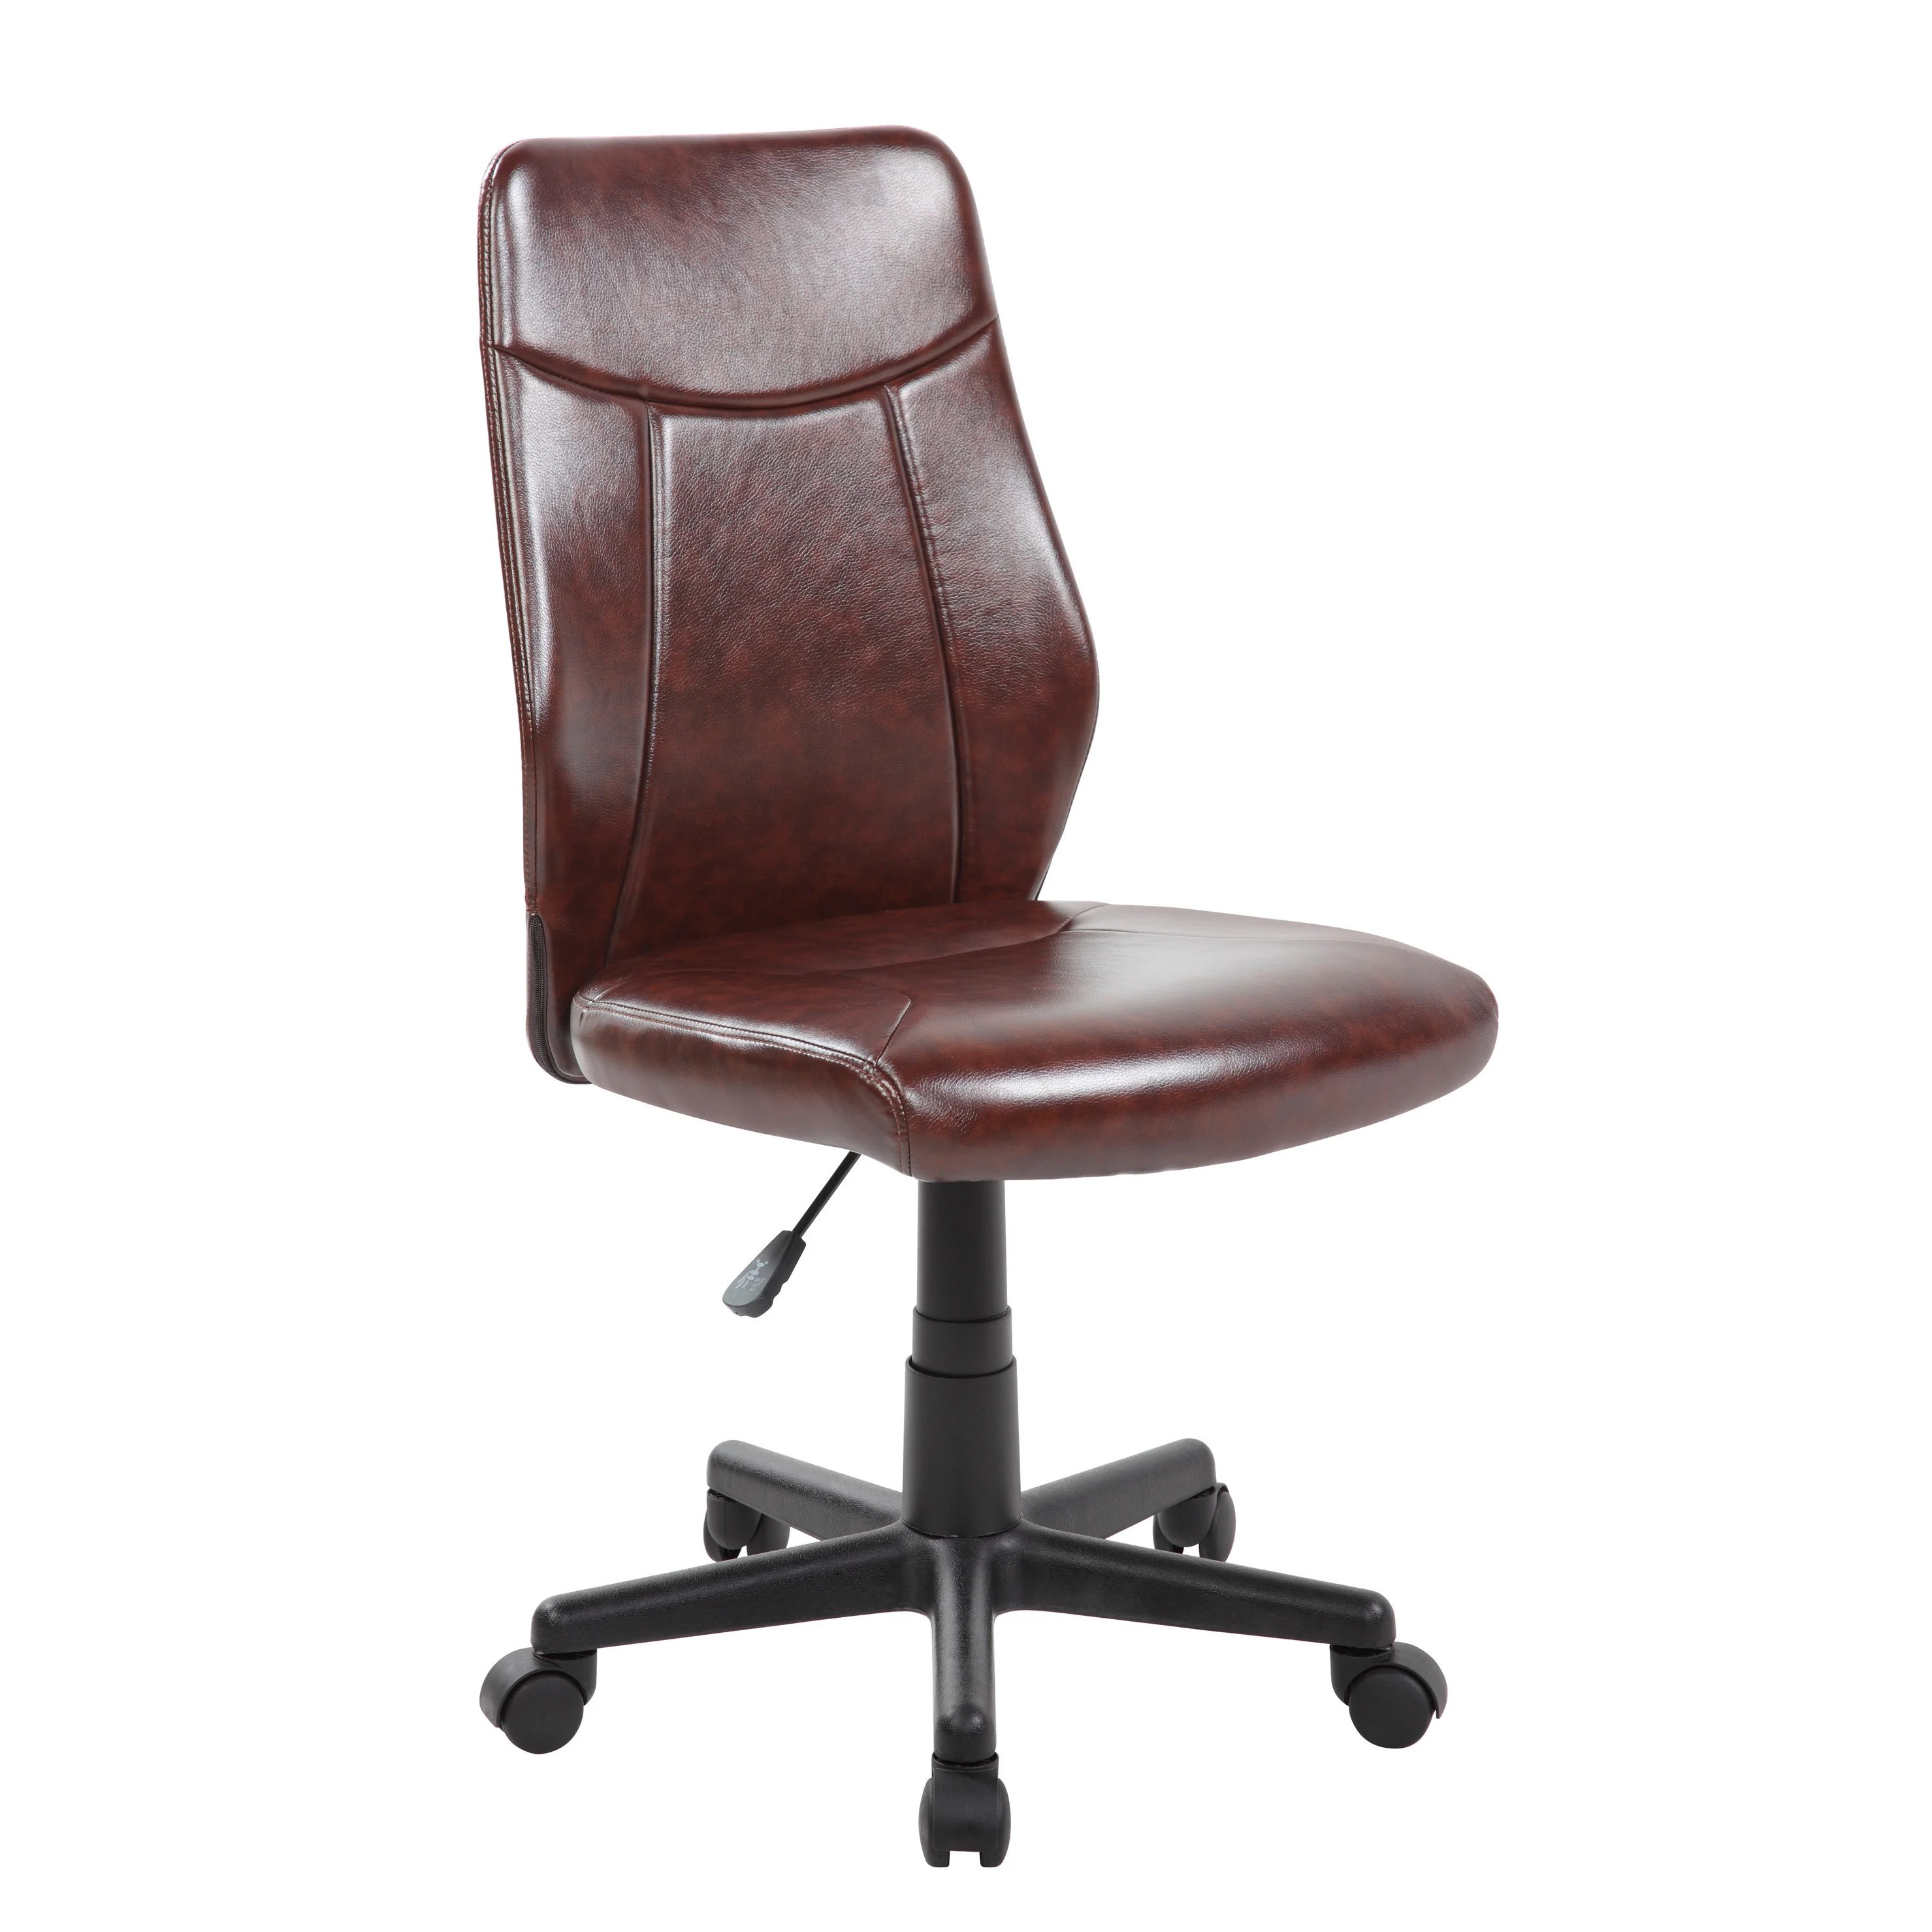 Armless Office Chairs With Wheels Pu Modern Ergonomic Mid Back Armless Executive Computer